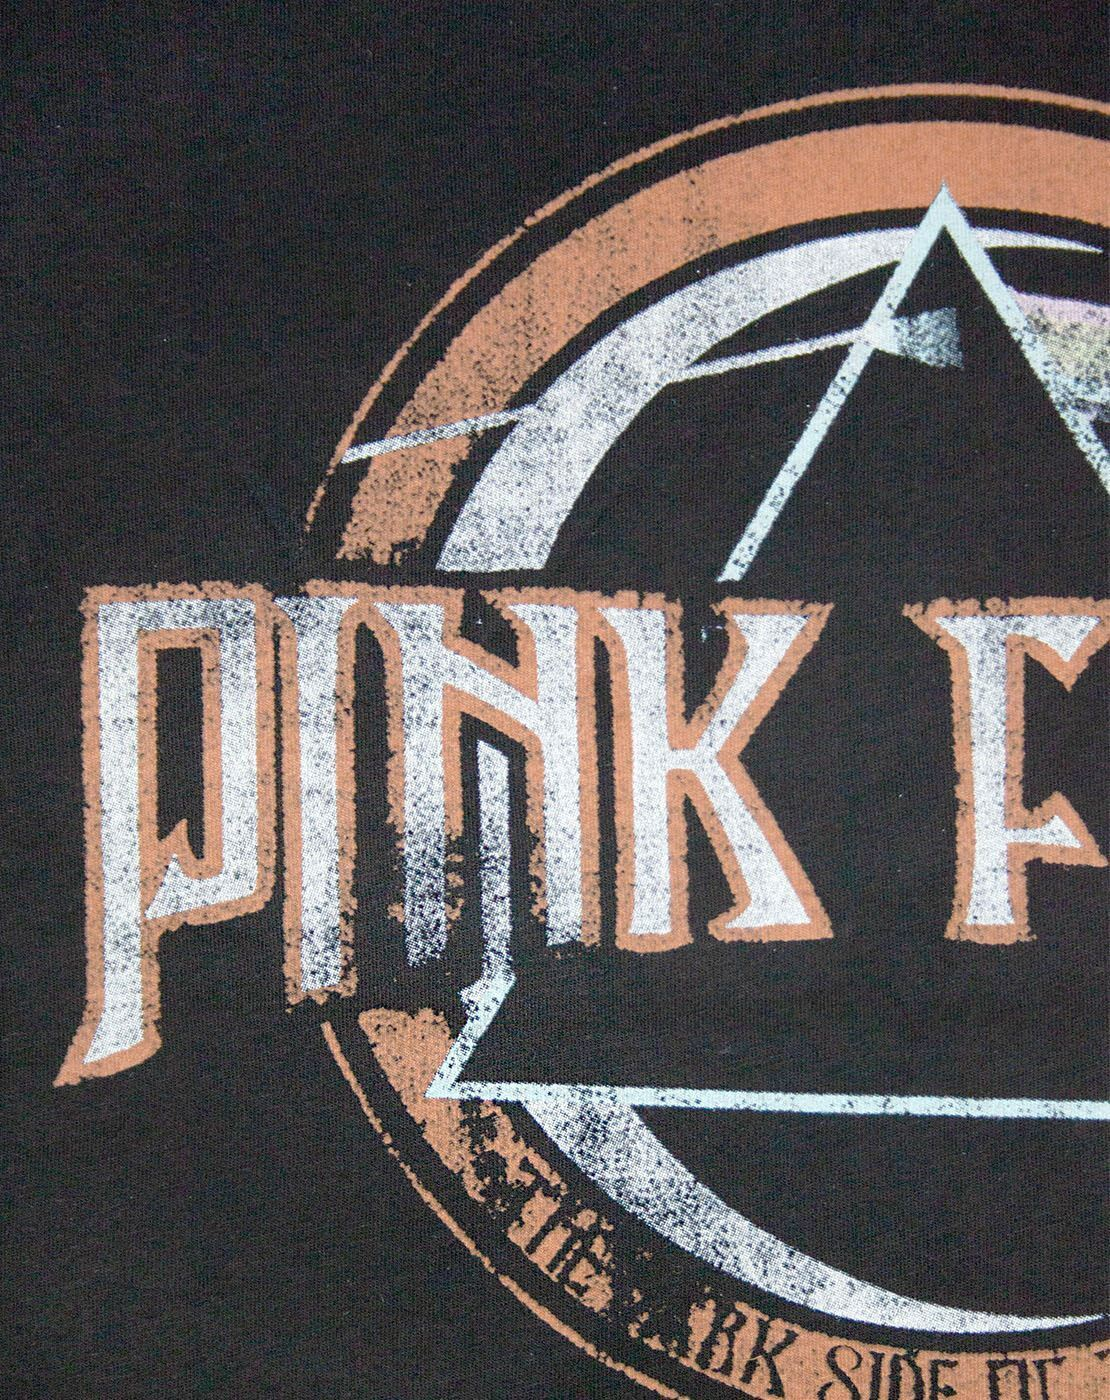 Amplified-Pink-Floyd-On-The-Run-Women-039-s-Sleeveless-T-Shirt thumbnail 12